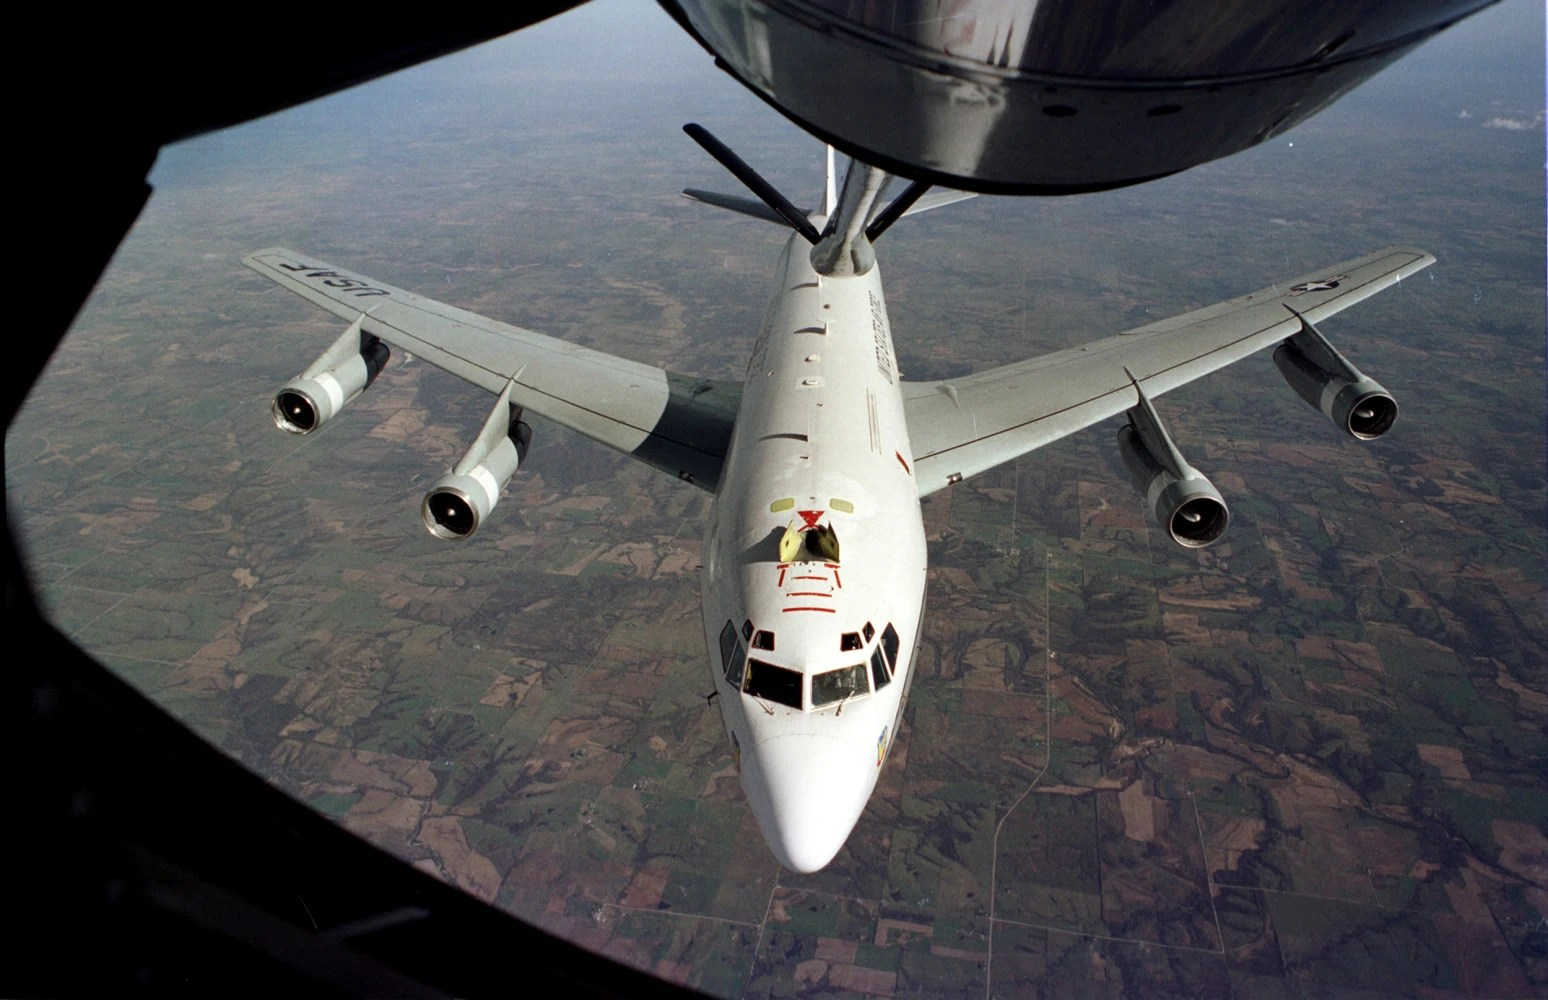 US Sends Nuclear Sniffer Jet to Monitor Radioactivity at Korean Peninsula